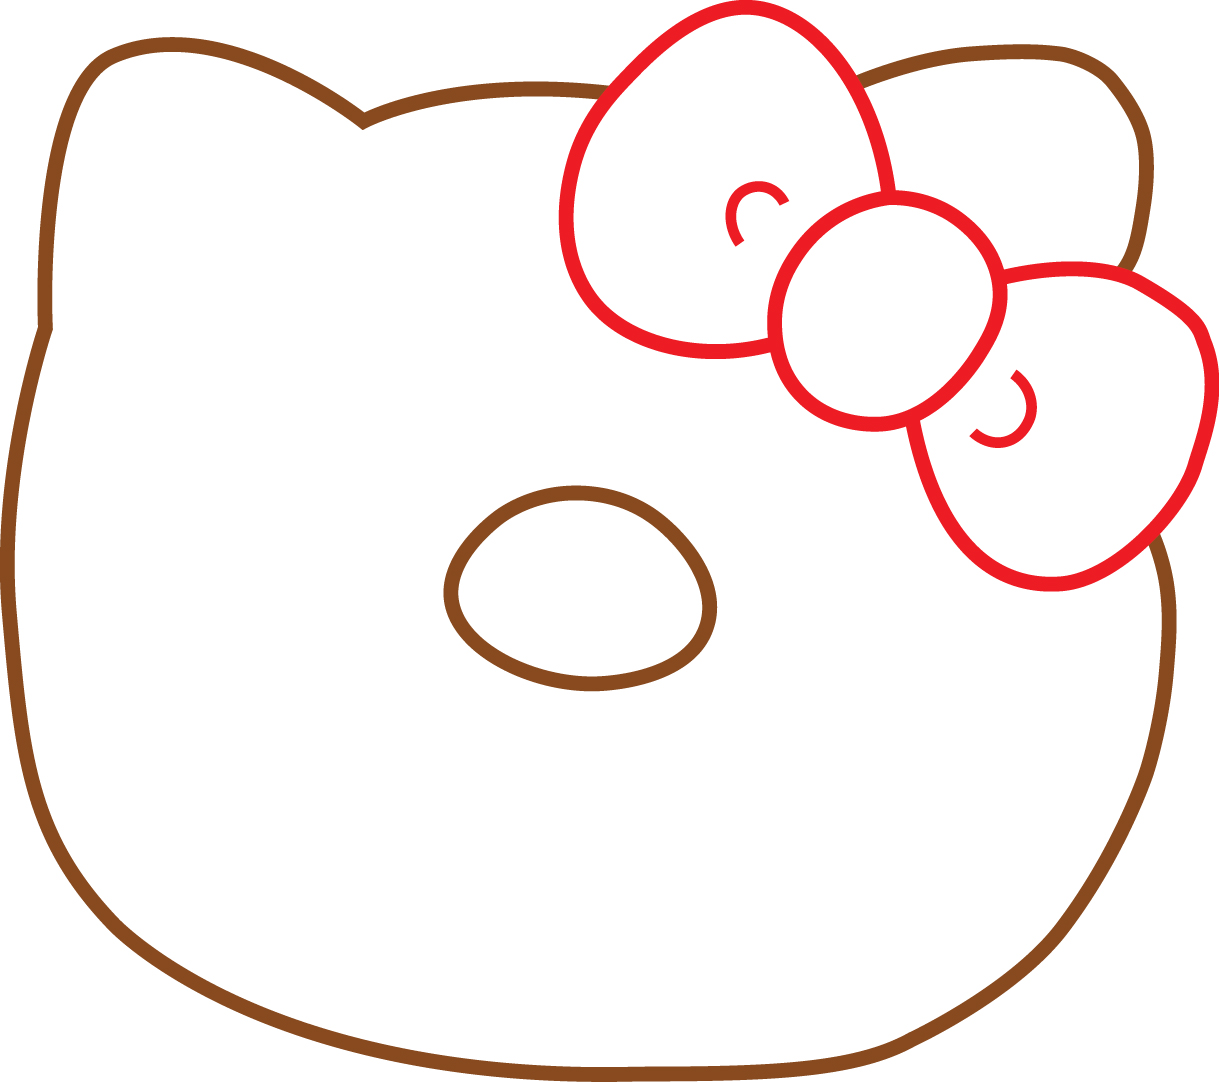 Design A Hello Kitty Jumbo Donut Squishy